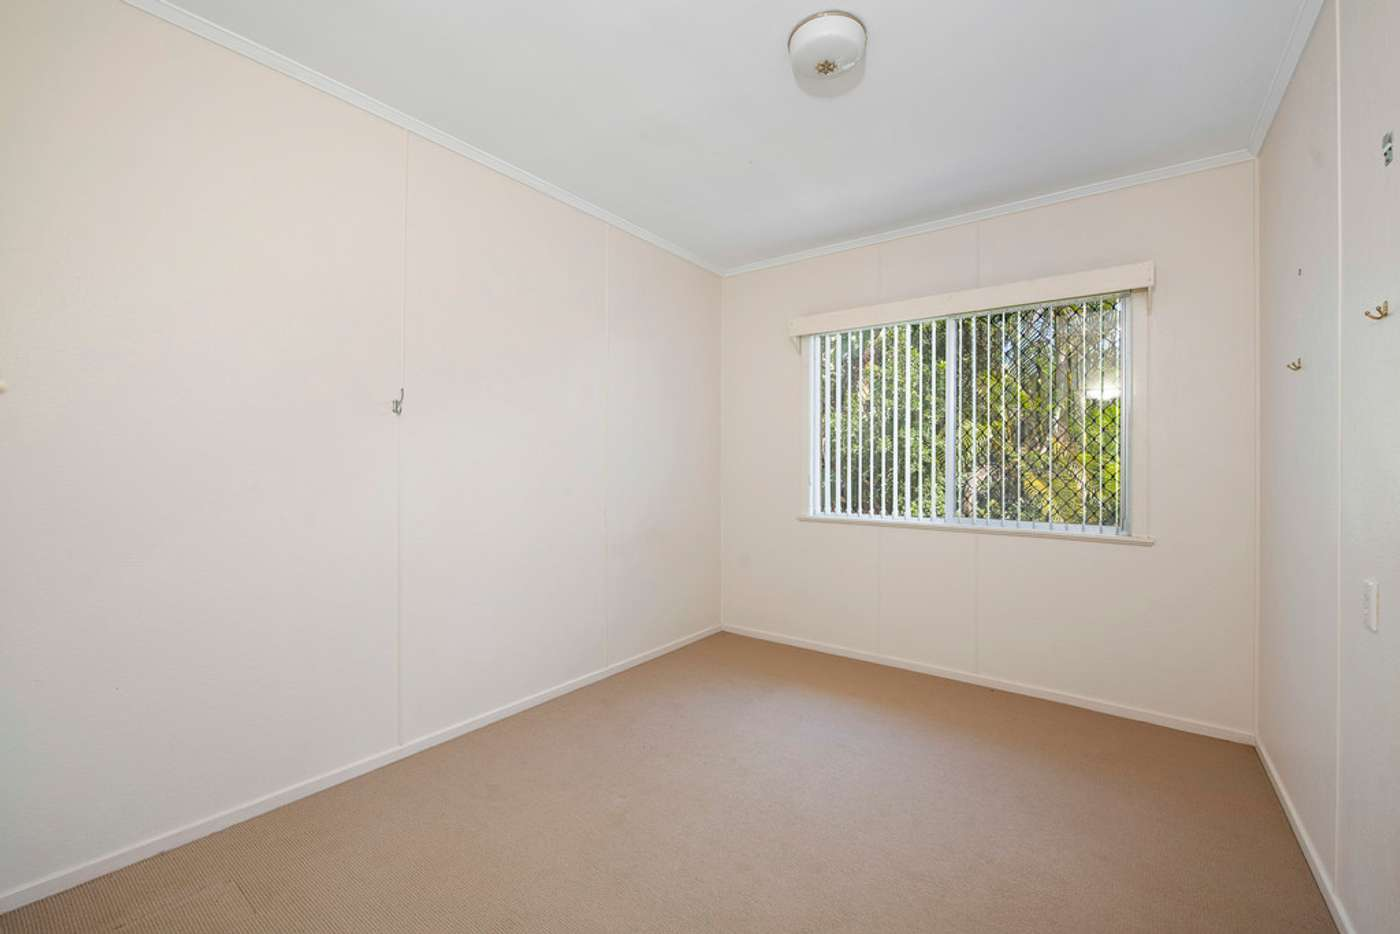 Seventh view of Homely house listing, 215 Bargara Road, Kalkie QLD 4670